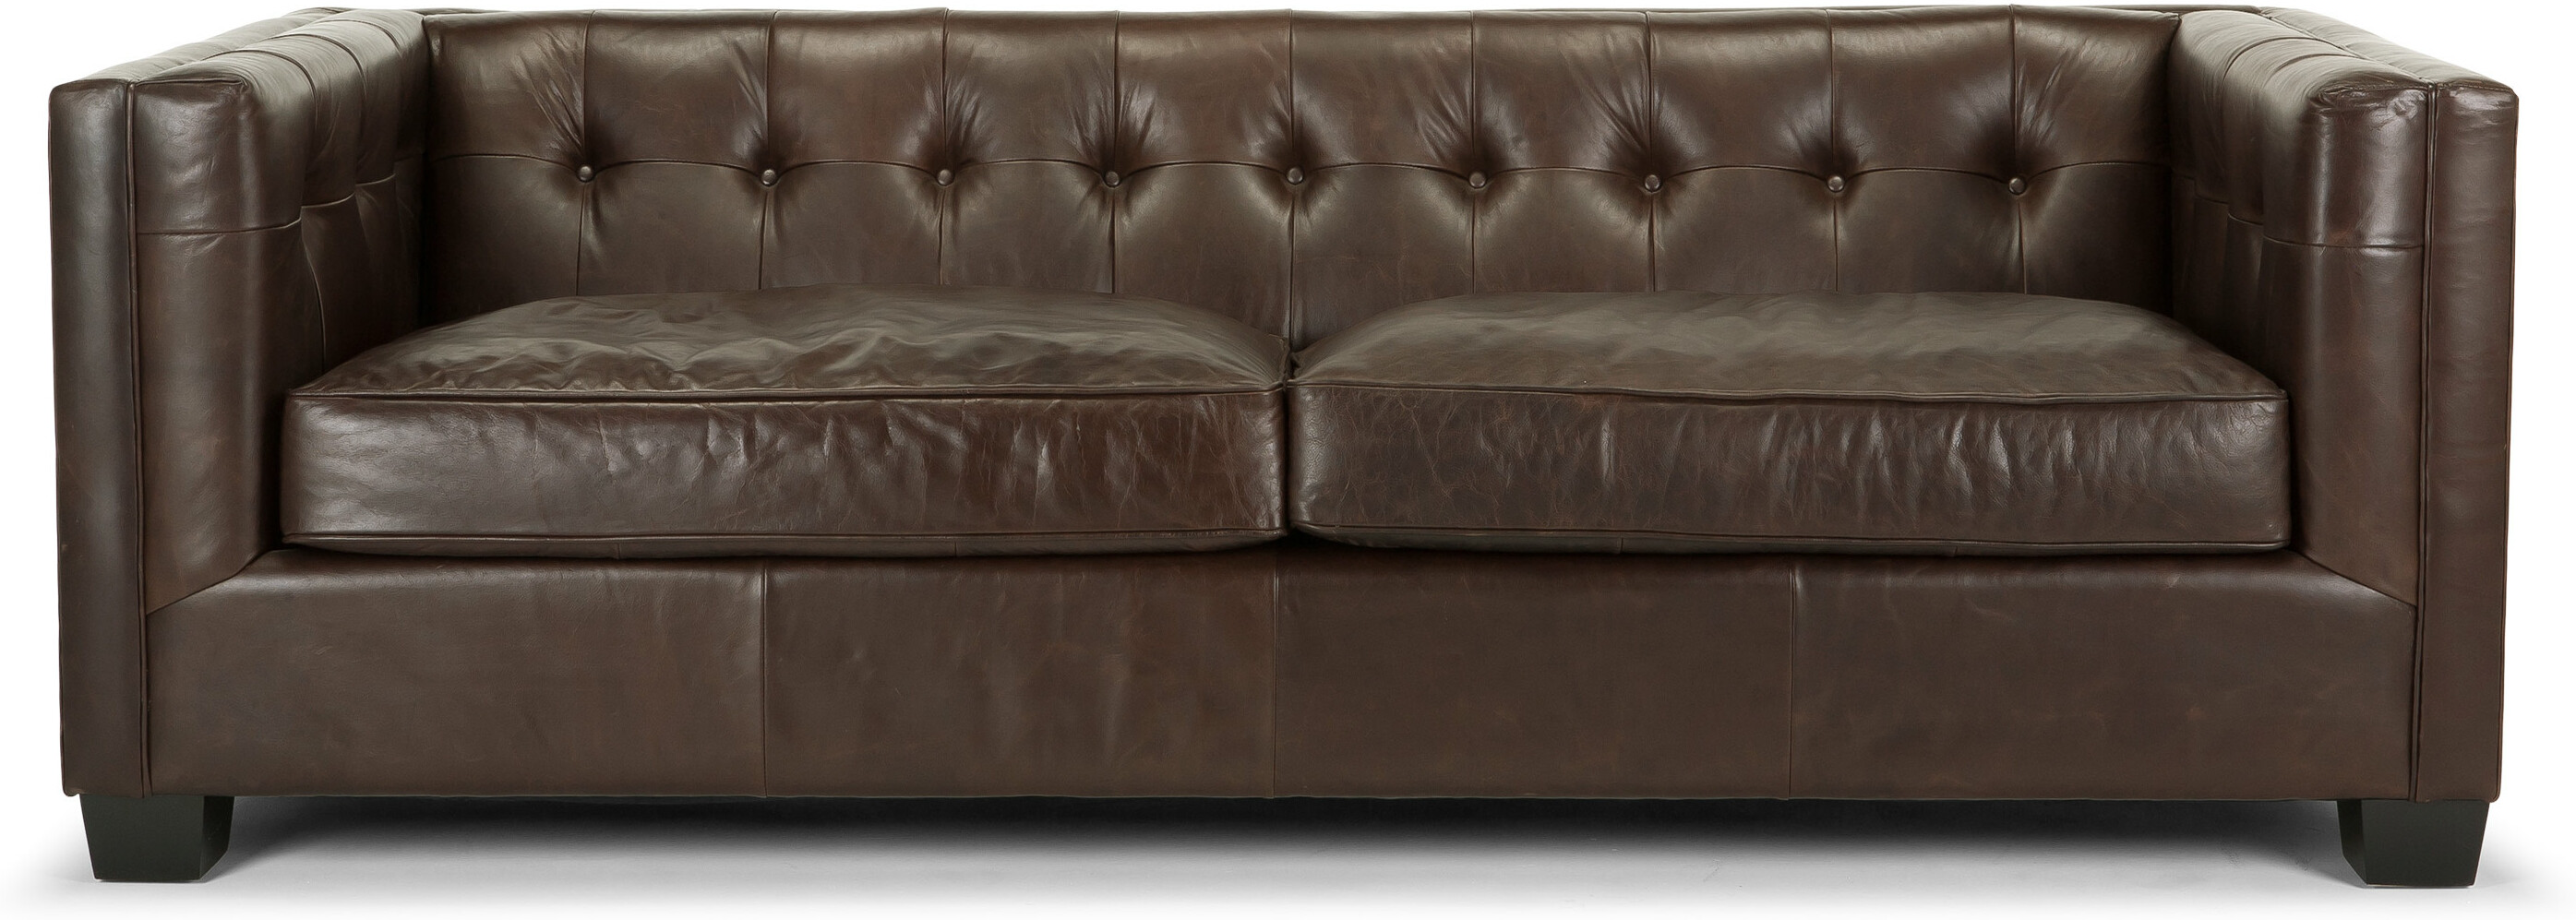 Edward 3 Seater Sofa, Vintage Brown